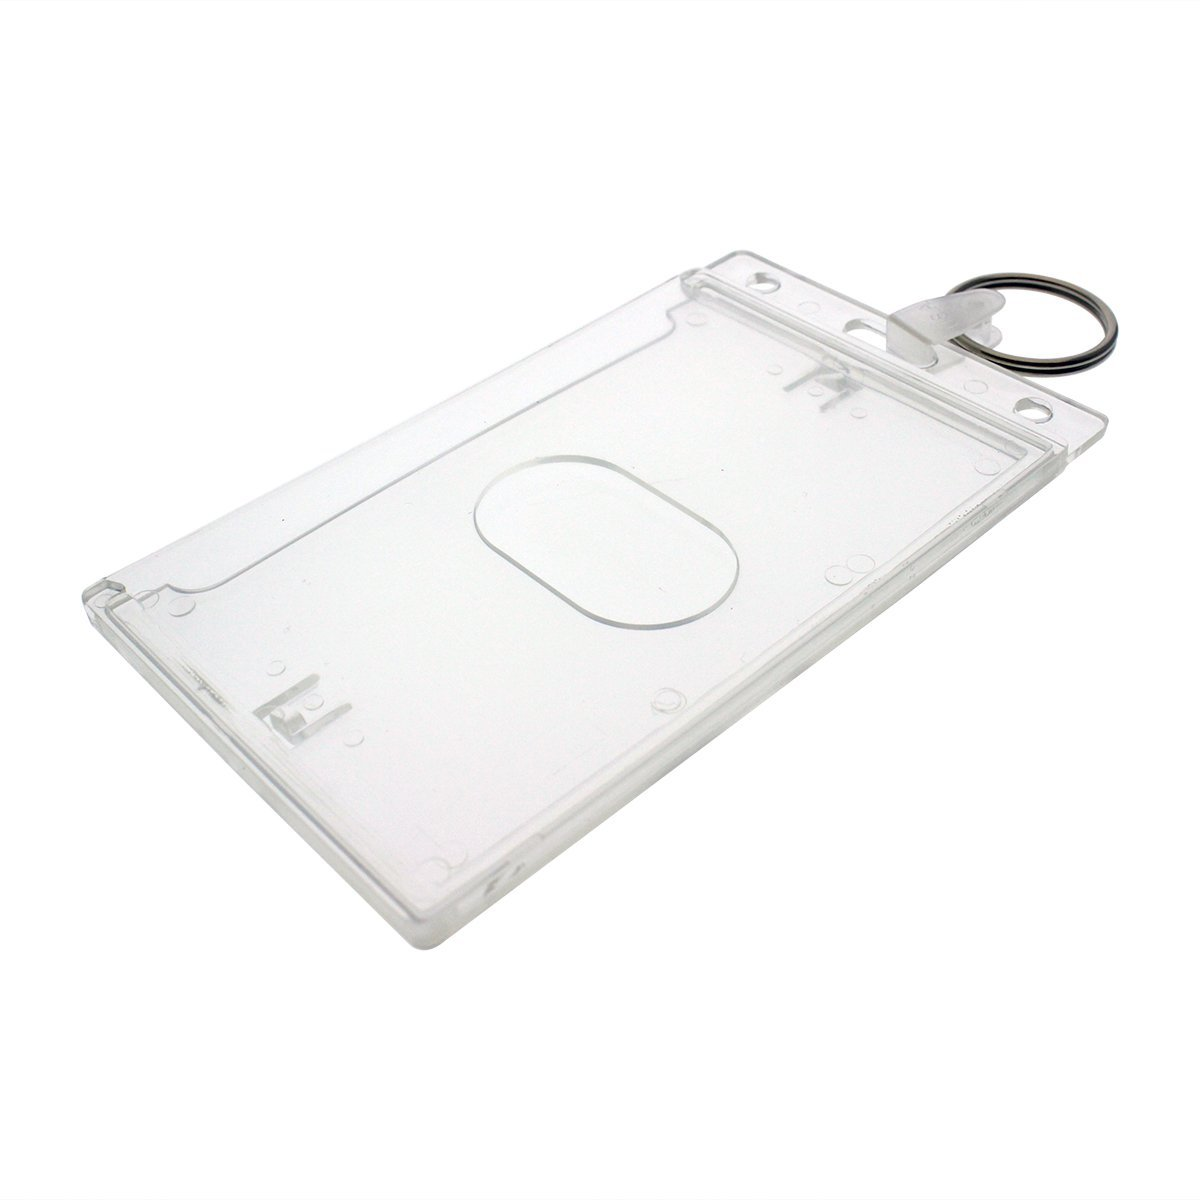 Fuel Card Holder Key Chain Gas Card Key Ring Id